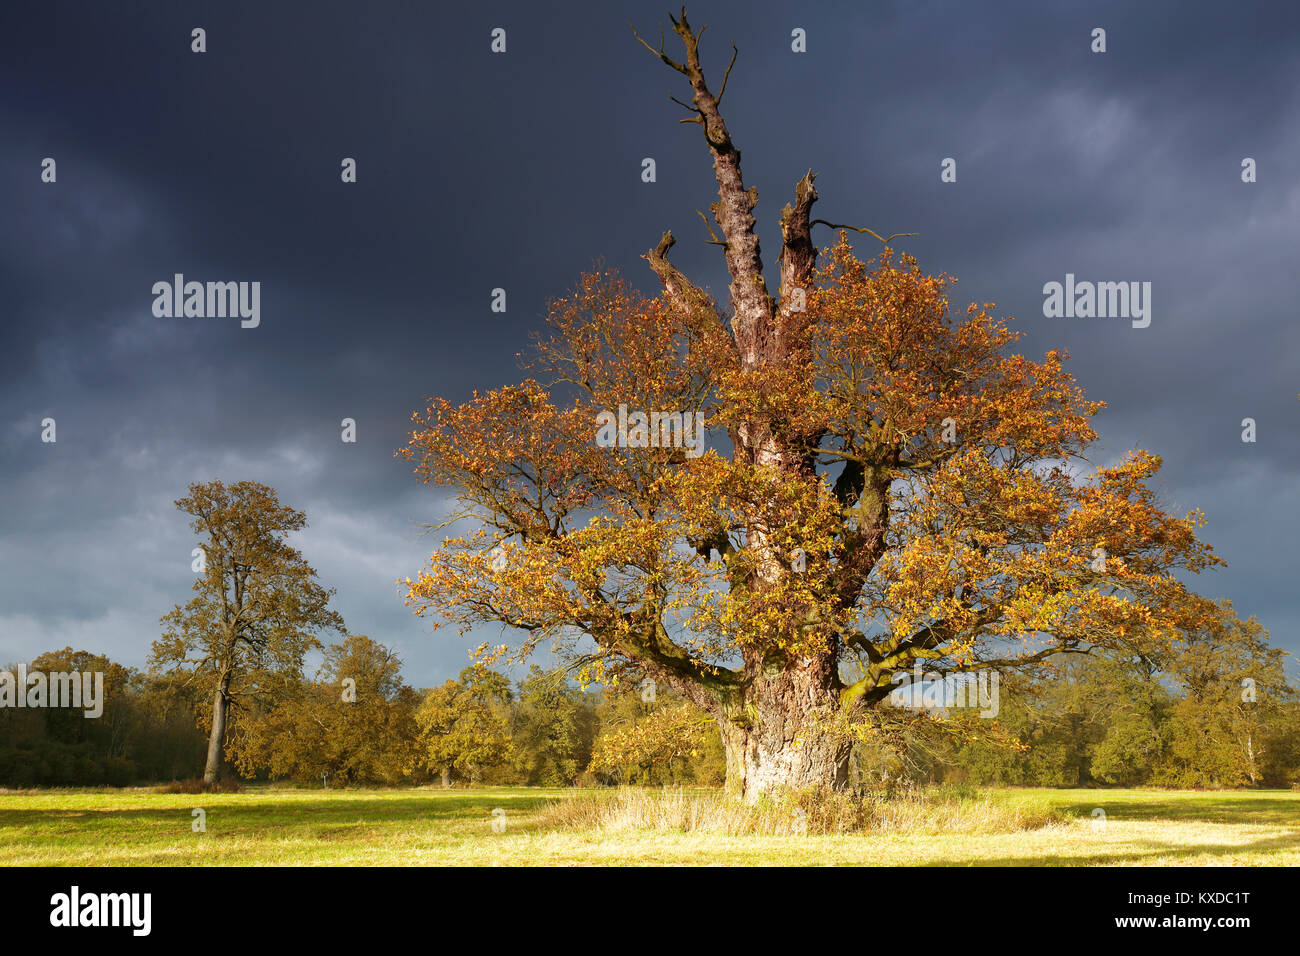 650 years old English oak (Quercus robur) in autumn, solitaire tree, alluvial forest, Biosphere Reserve Middle Elbe - Stock Image